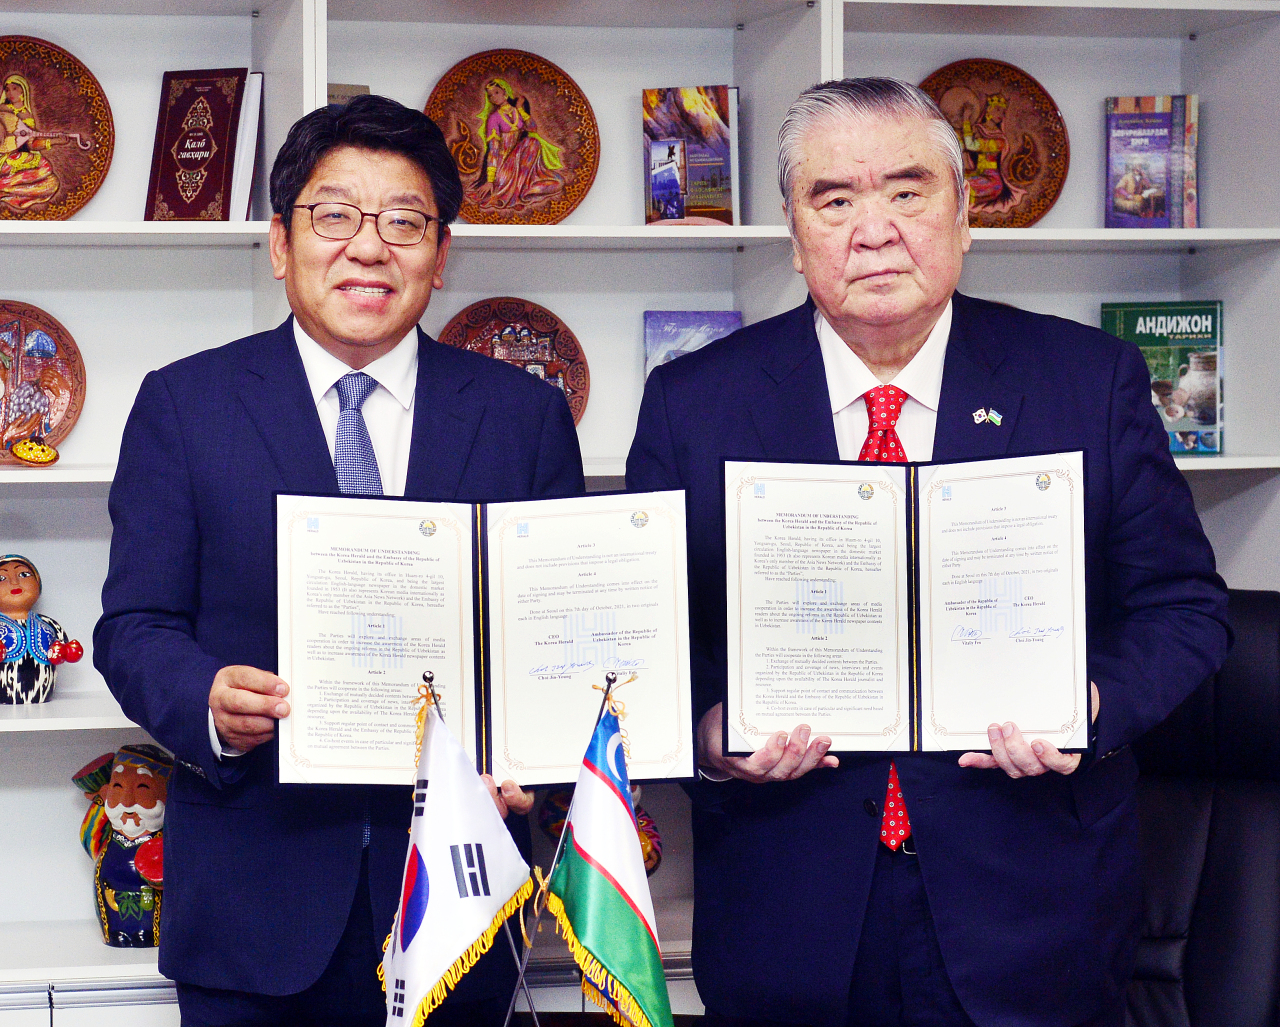 Choi Jin-young (left), CEO of The Korea Herald, poses with Uzbek Ambassador Vitali V. Fen at a signing ceremony at the Embassy of Uzbekistan in Seoul on Thursday. (Park Hyun-koo/The Korea Herald)